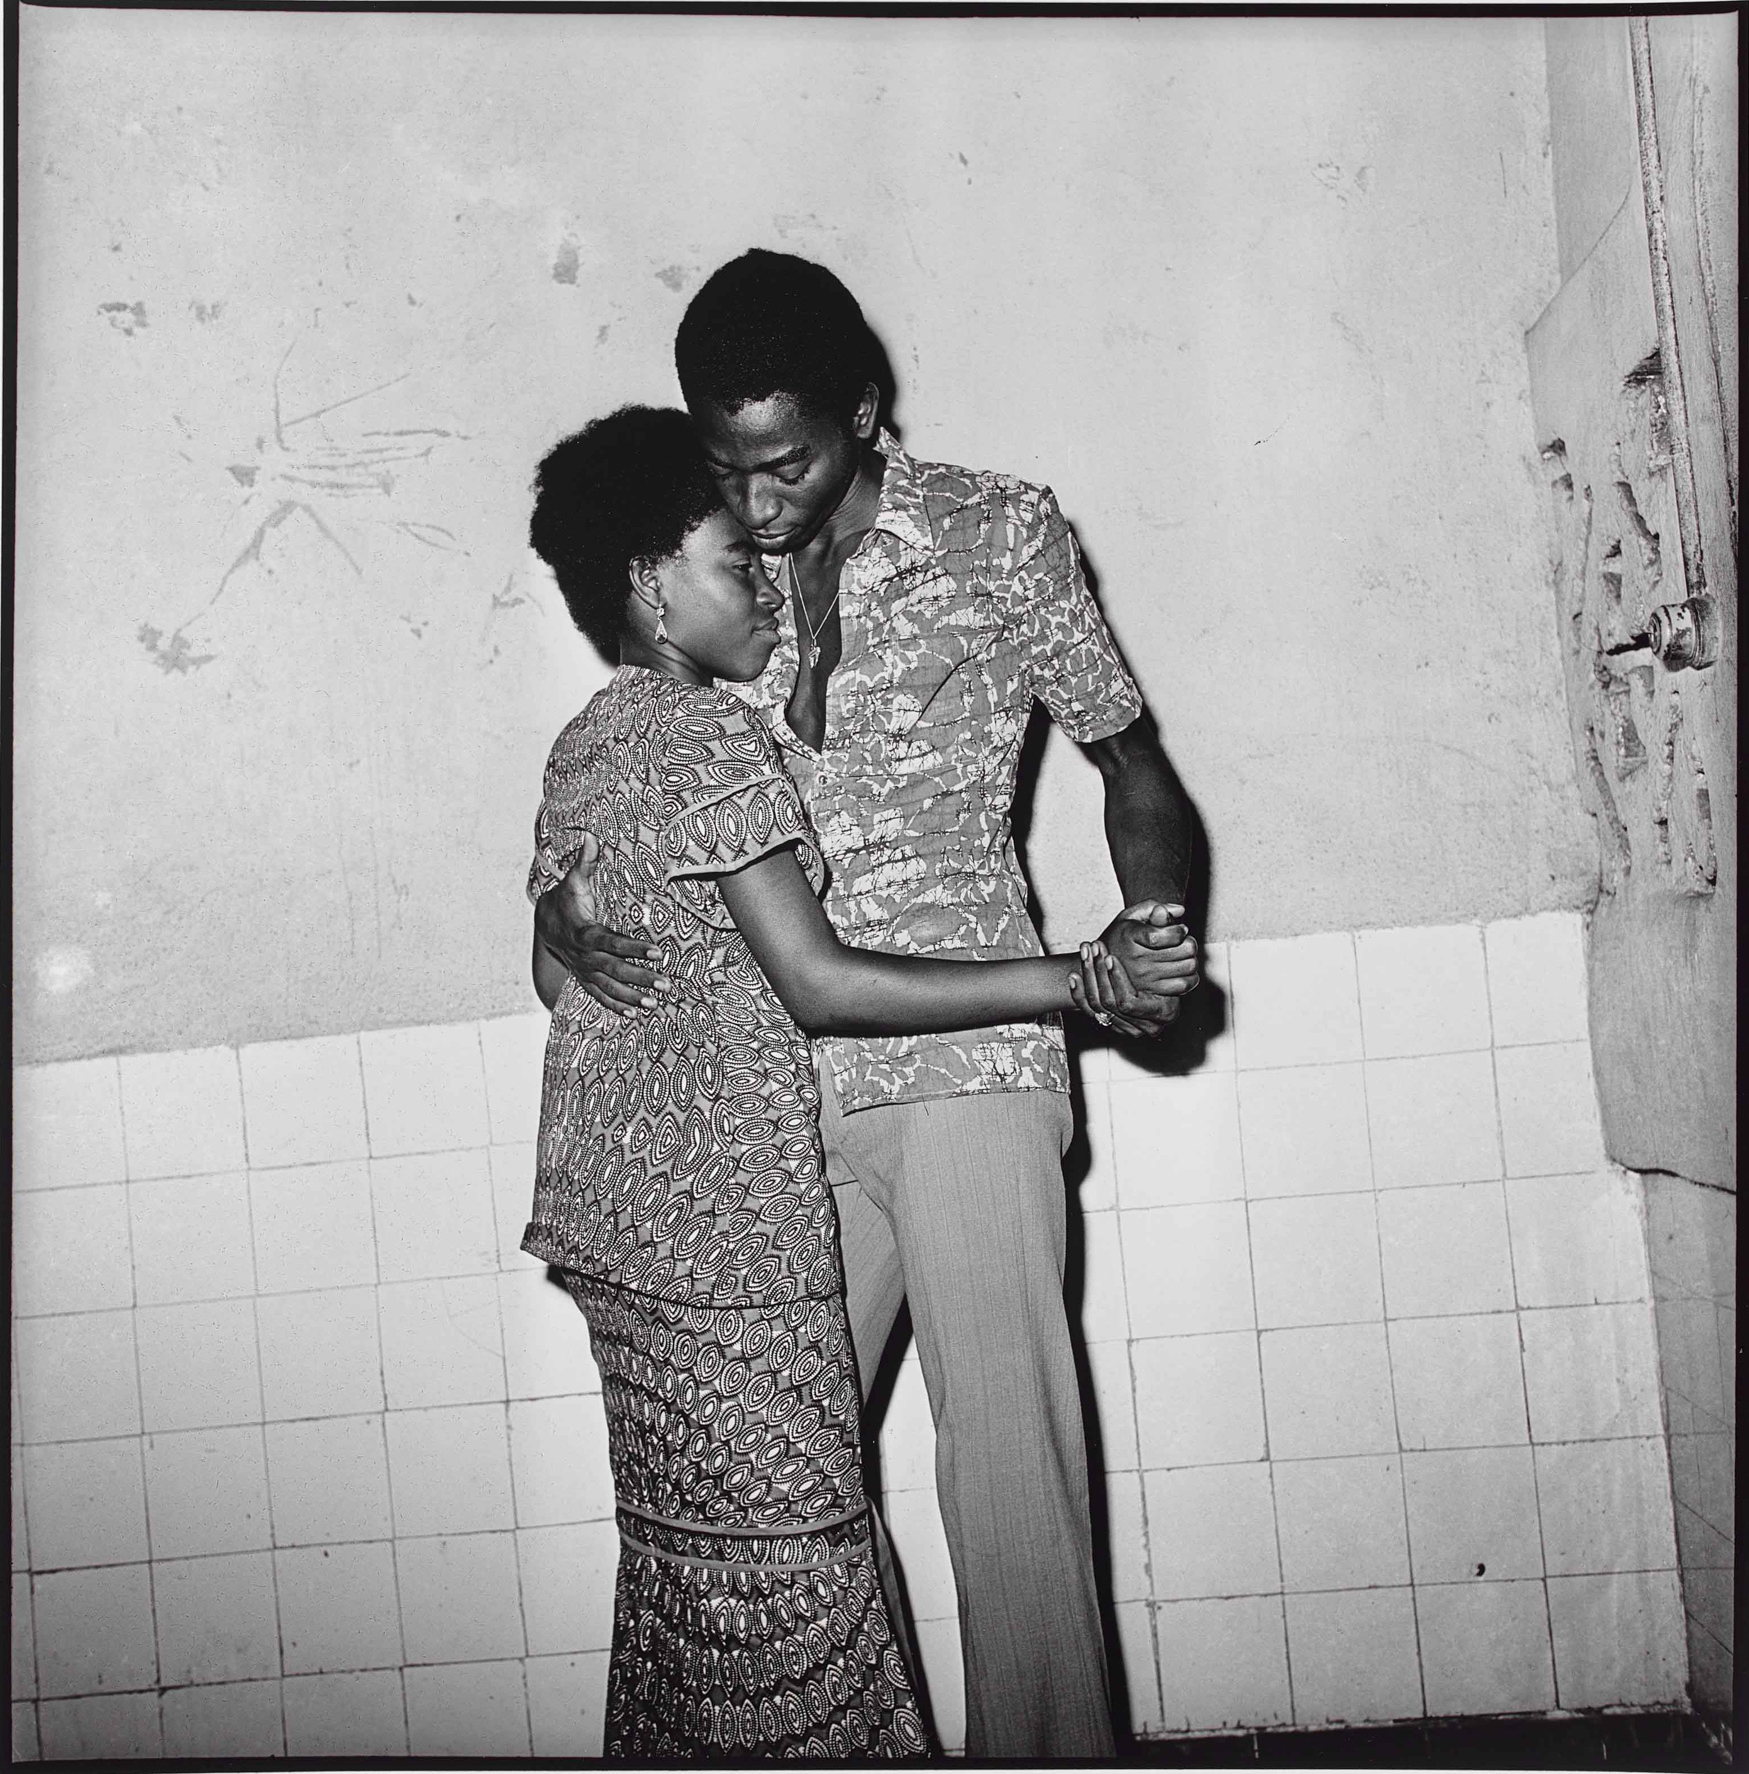 Paul Kodjo, Untitled, 1970s. Gelatin silver print, 50 x 40 cm. Art Gallery of Ontario, Purchase, with funds from the Photography Curatorial Committee, 2020. © Paul Kodjo, courtesy Les Rencontres du Sud 2019/2330.